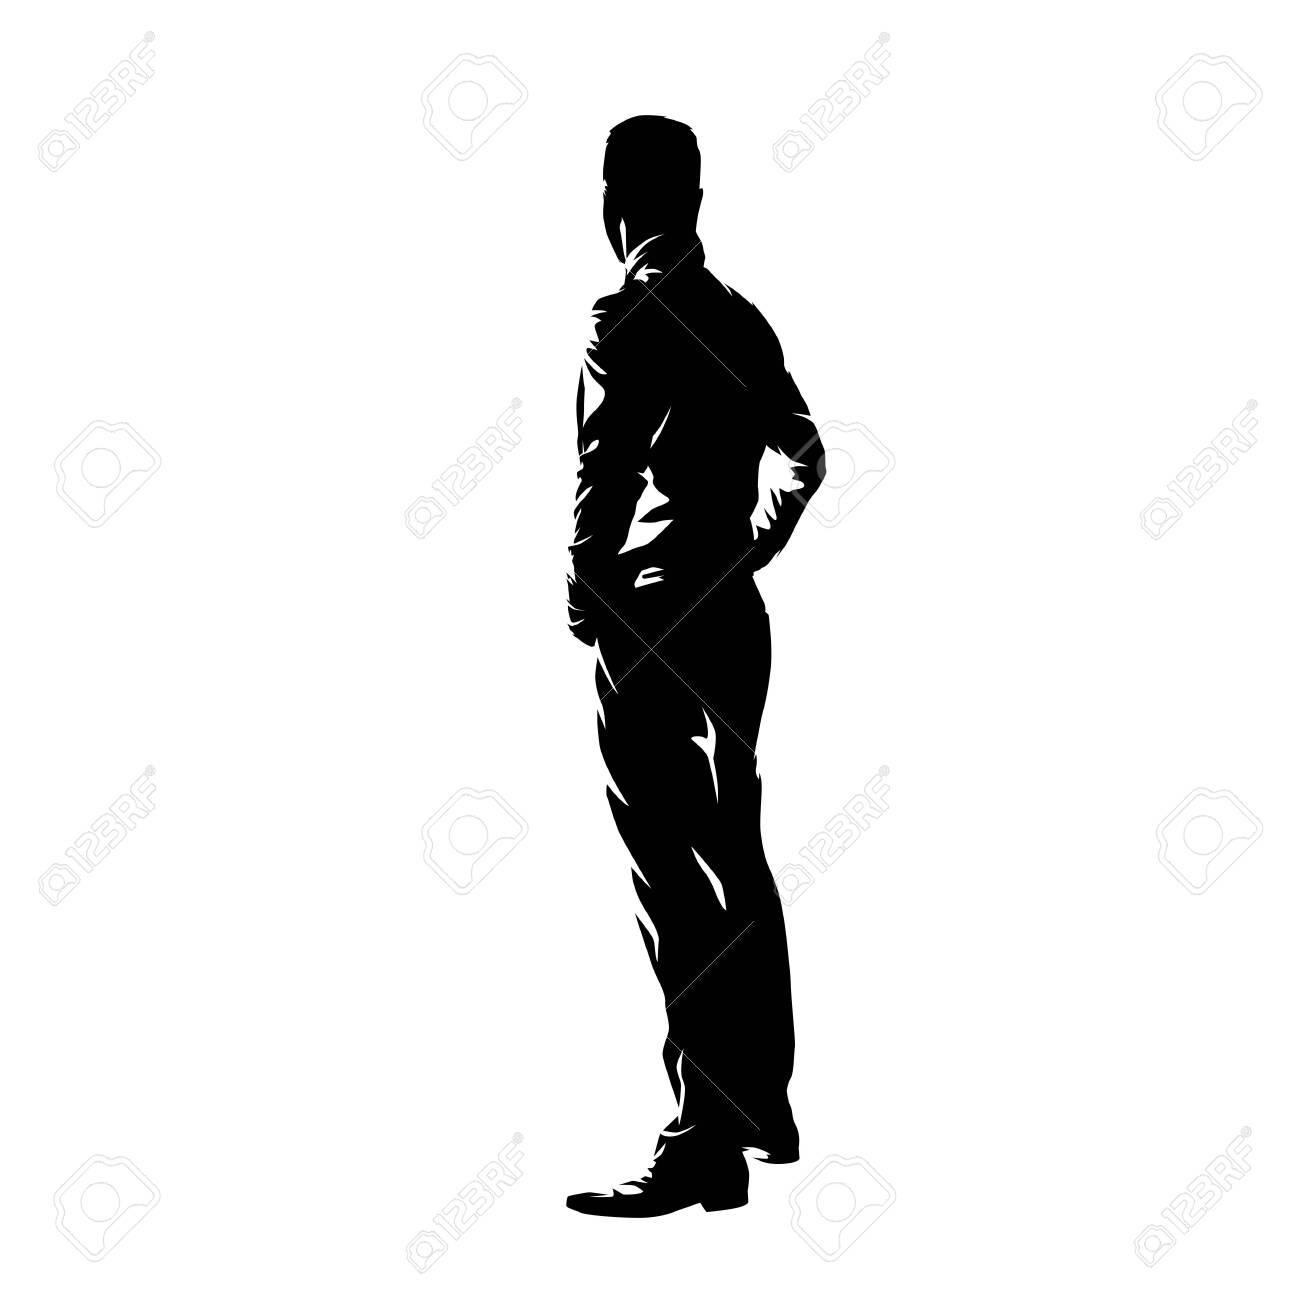 Man Standing With Hands On Hips Side View Profile Ink Drawing Royalty Free Cliparts Vectors And Stock Illustration Image 142950068